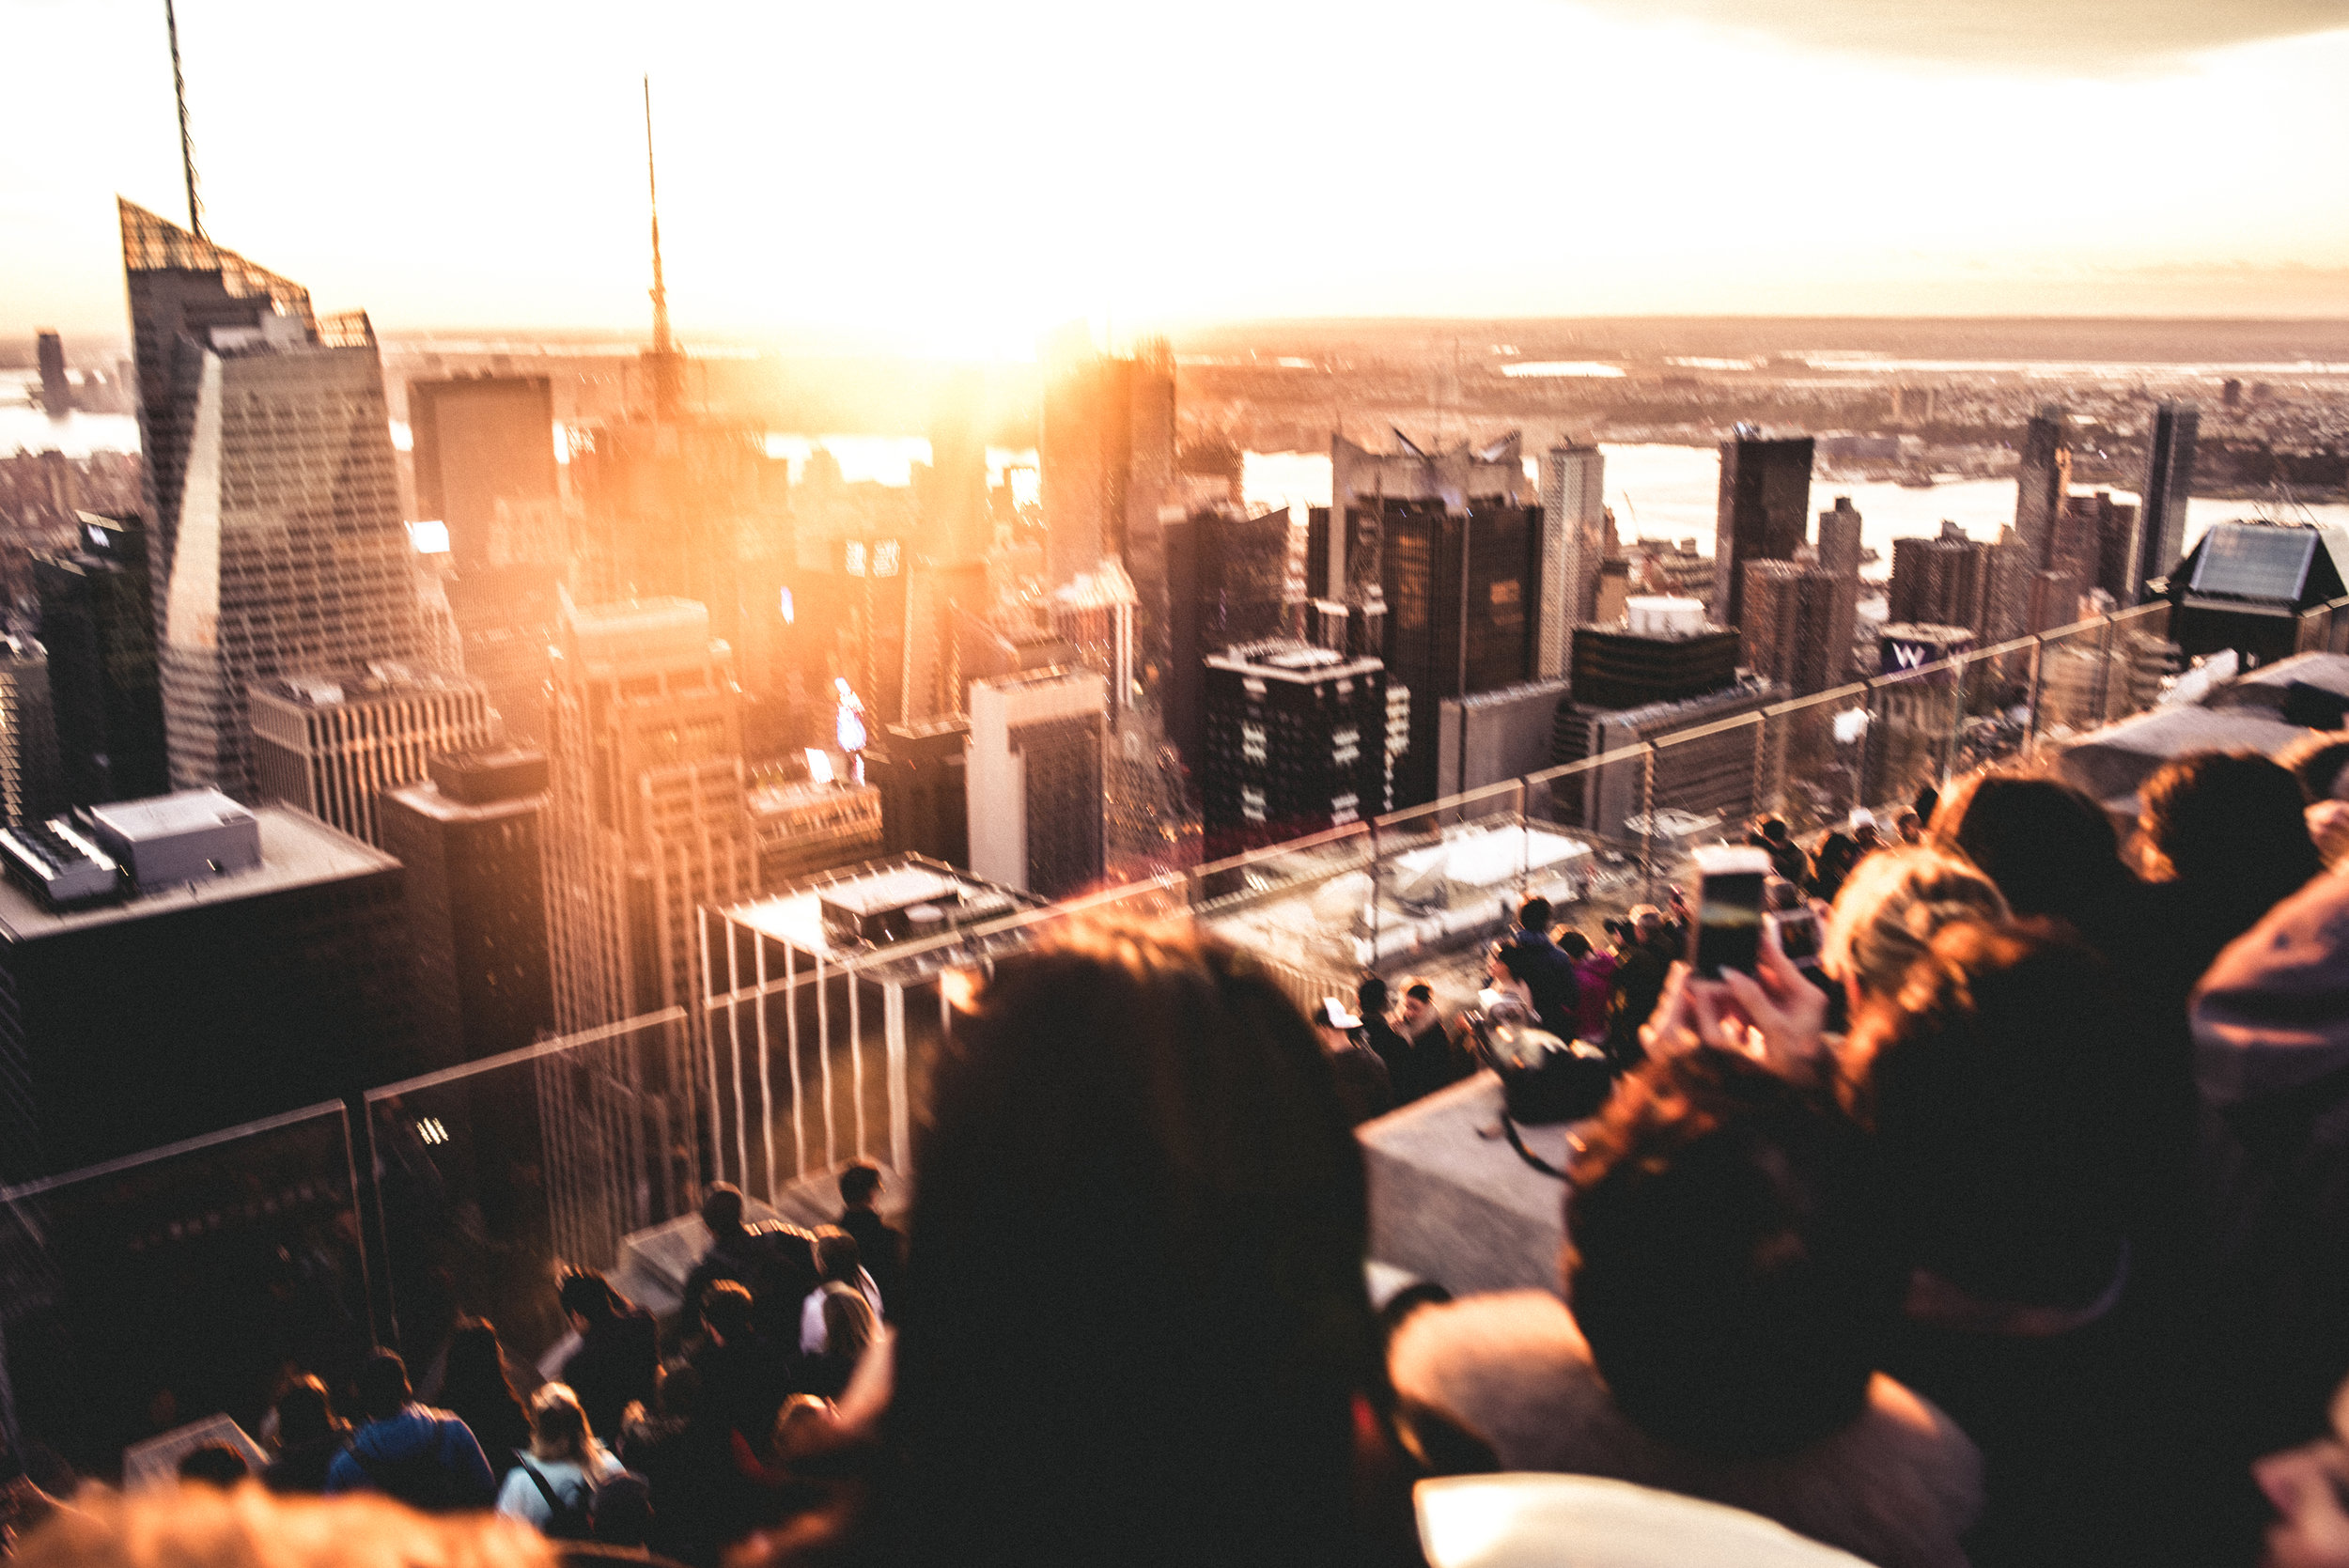 """Views from a 70 story building; The Rockefeller Center, NY.  """" Since our early days, humankind aimed big, high, colosal. Big houses, high buildings, colosal ideas. We expanded, we created, we evolved. Few places on this Earth remained untouched by our hunger for success. And that's how we know that we are unstoppable!"""" -  Eana Georgiana Cătălina"""